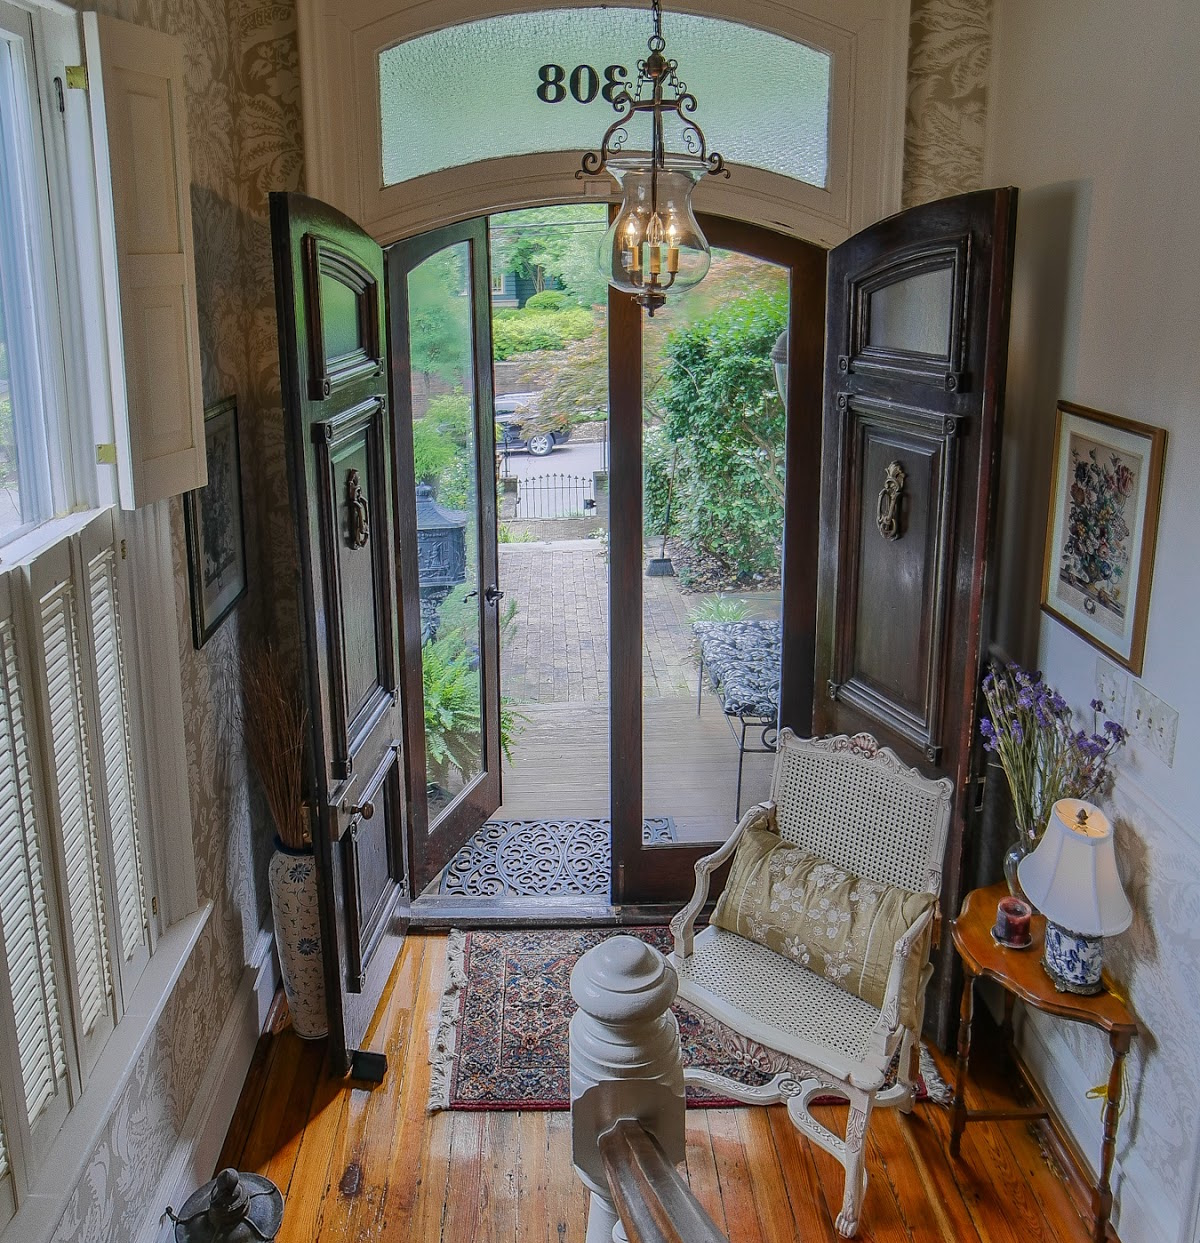 real-estate-properties-for-sale-downtown-wilmington-nc.